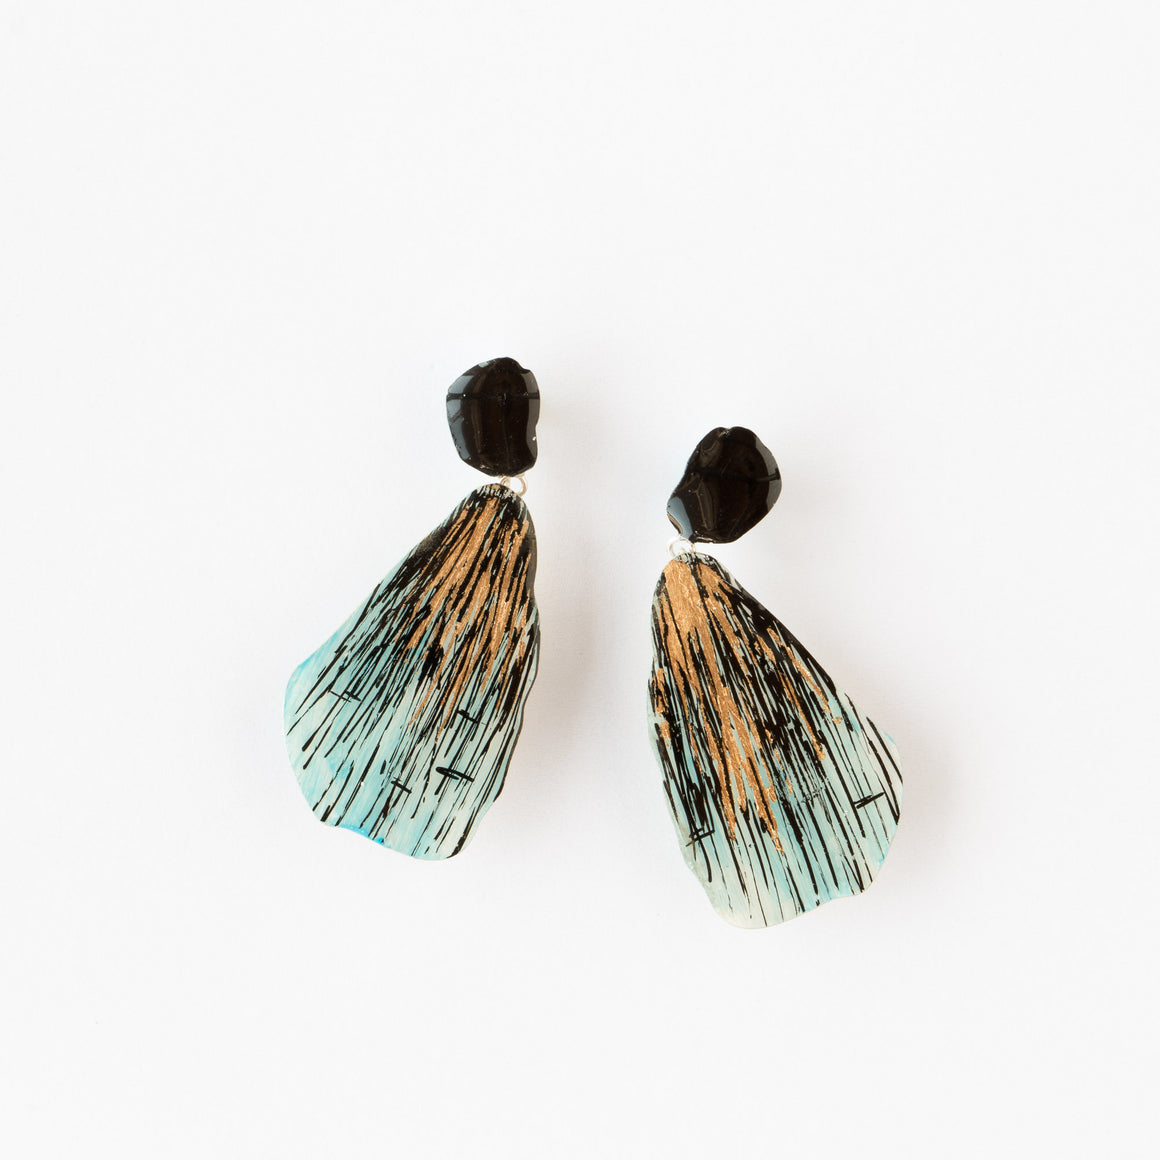 730 - Large Turquoise, Black & Gold Contemporary Drop Earrings - Sold by Chic & Basta